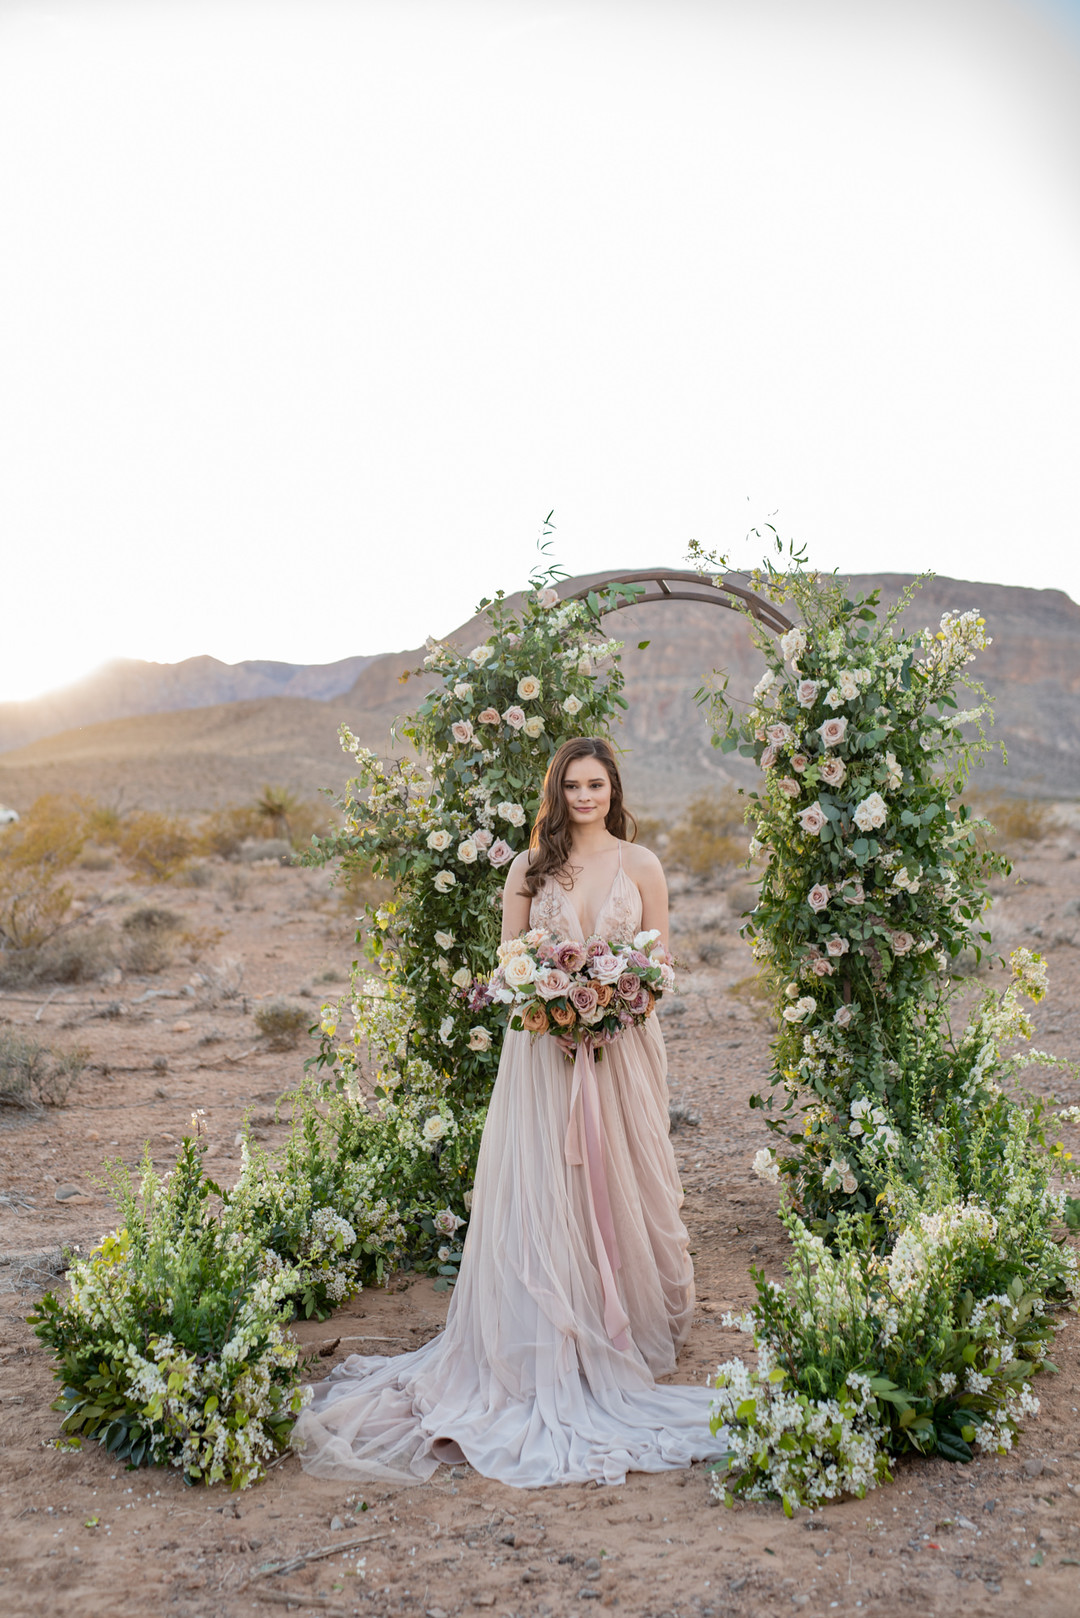 Floral backdrop arbor arch for wedding ceremony